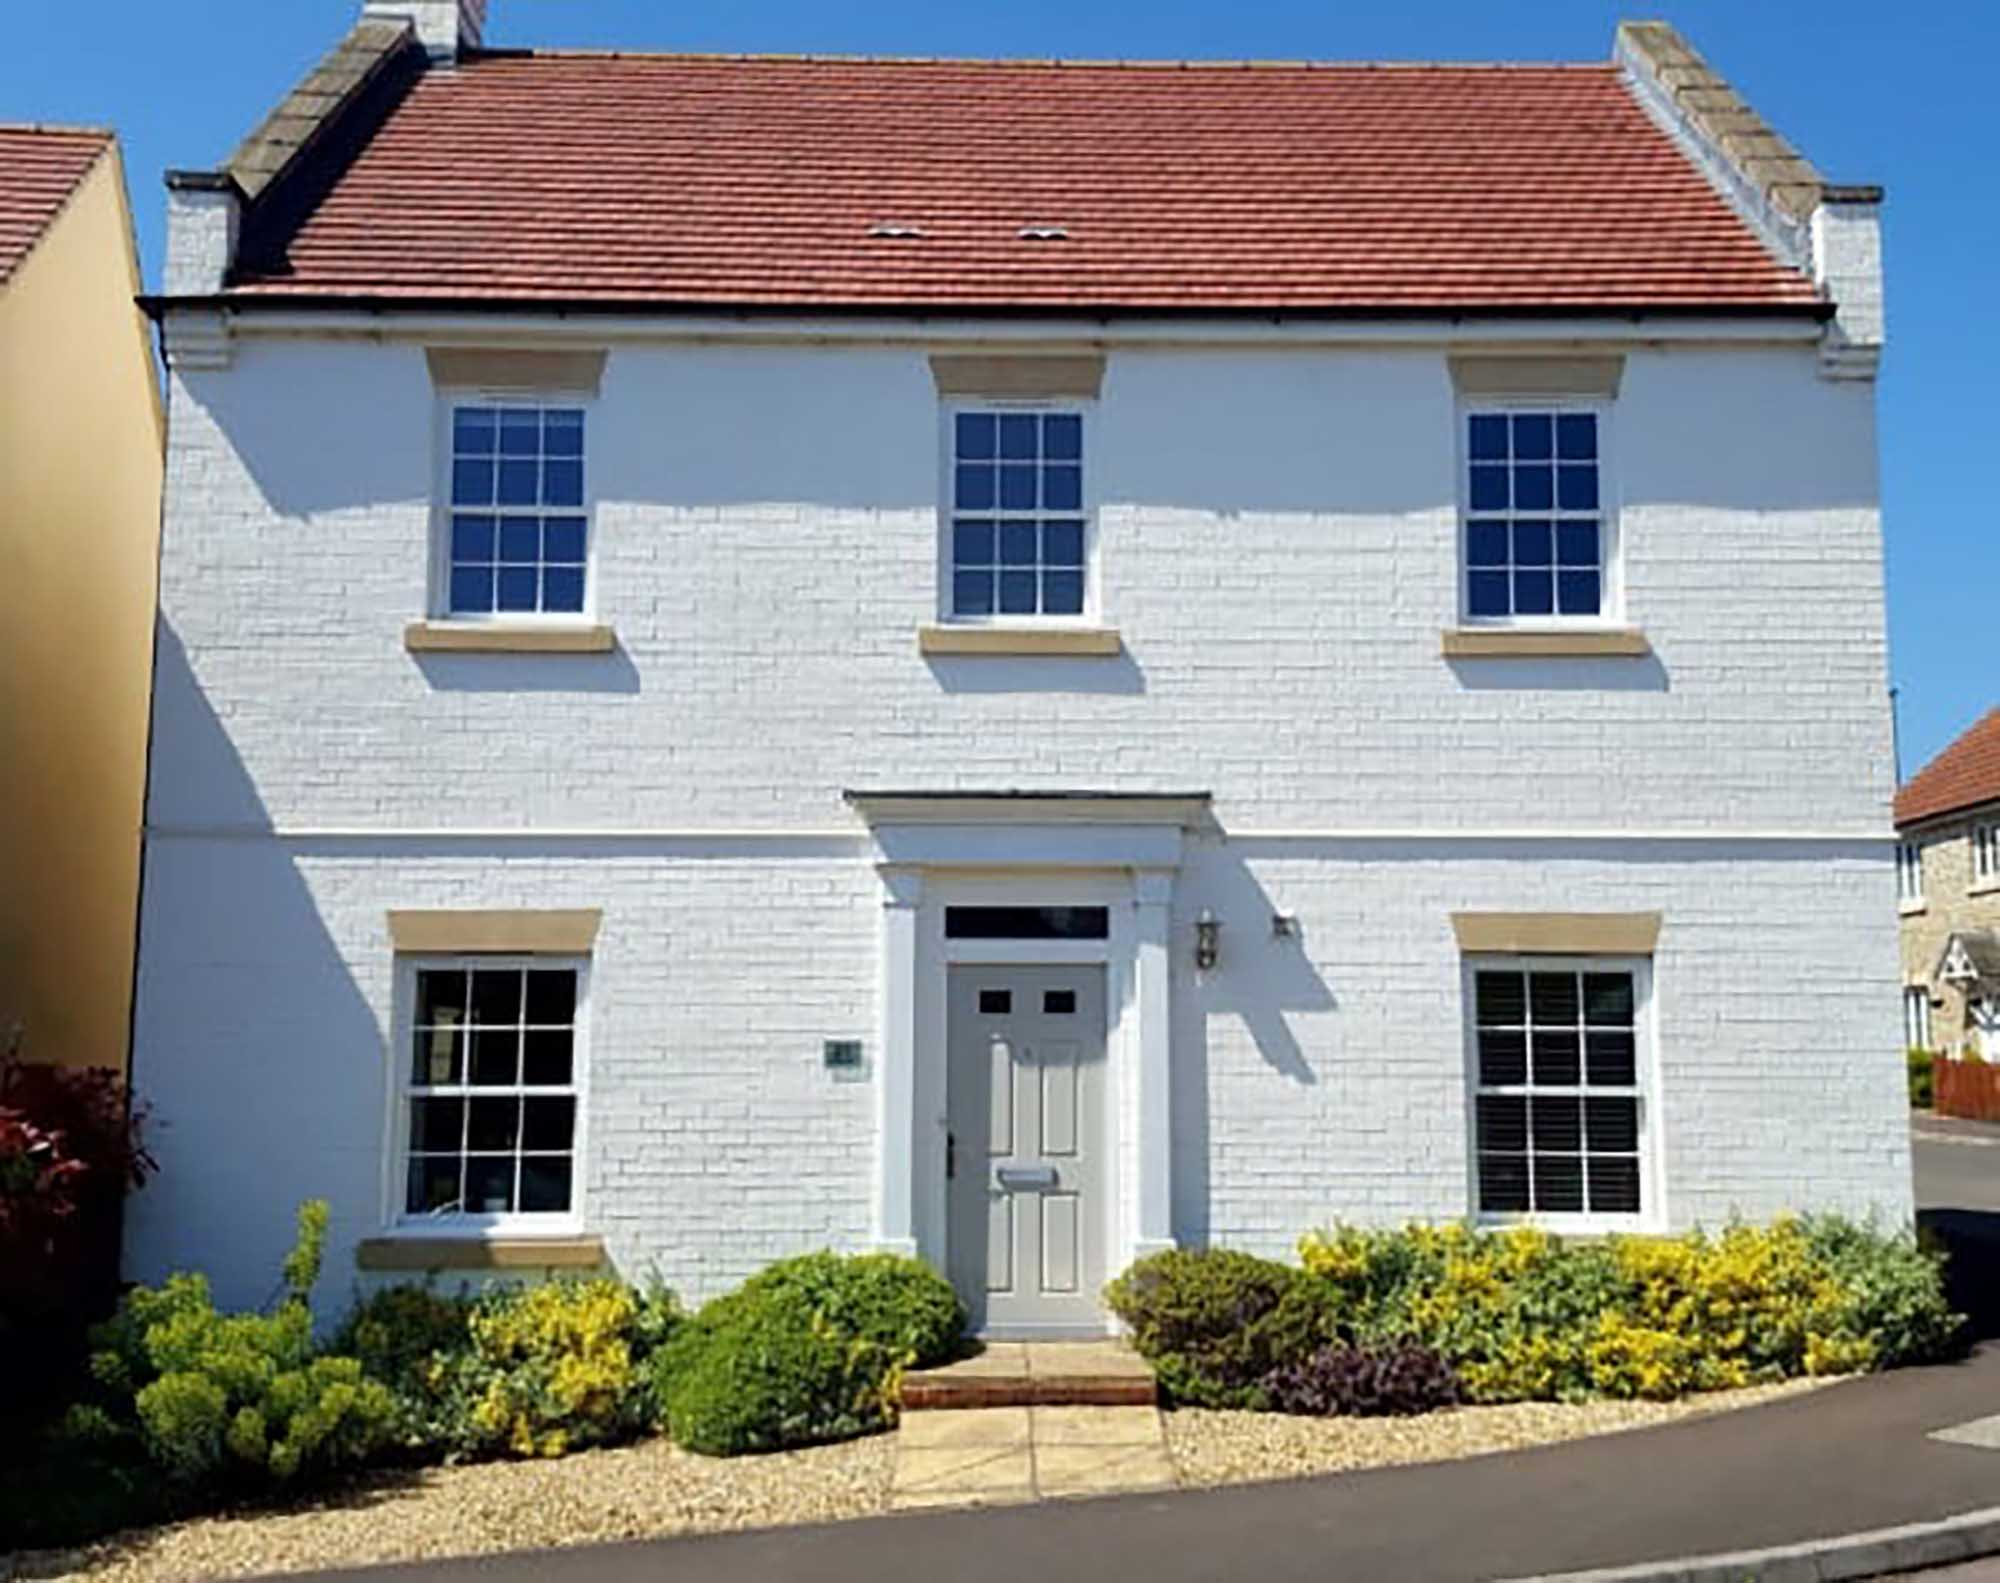 No Chain. Spacious attractive detached house in Cuckoo Hill, Bruton